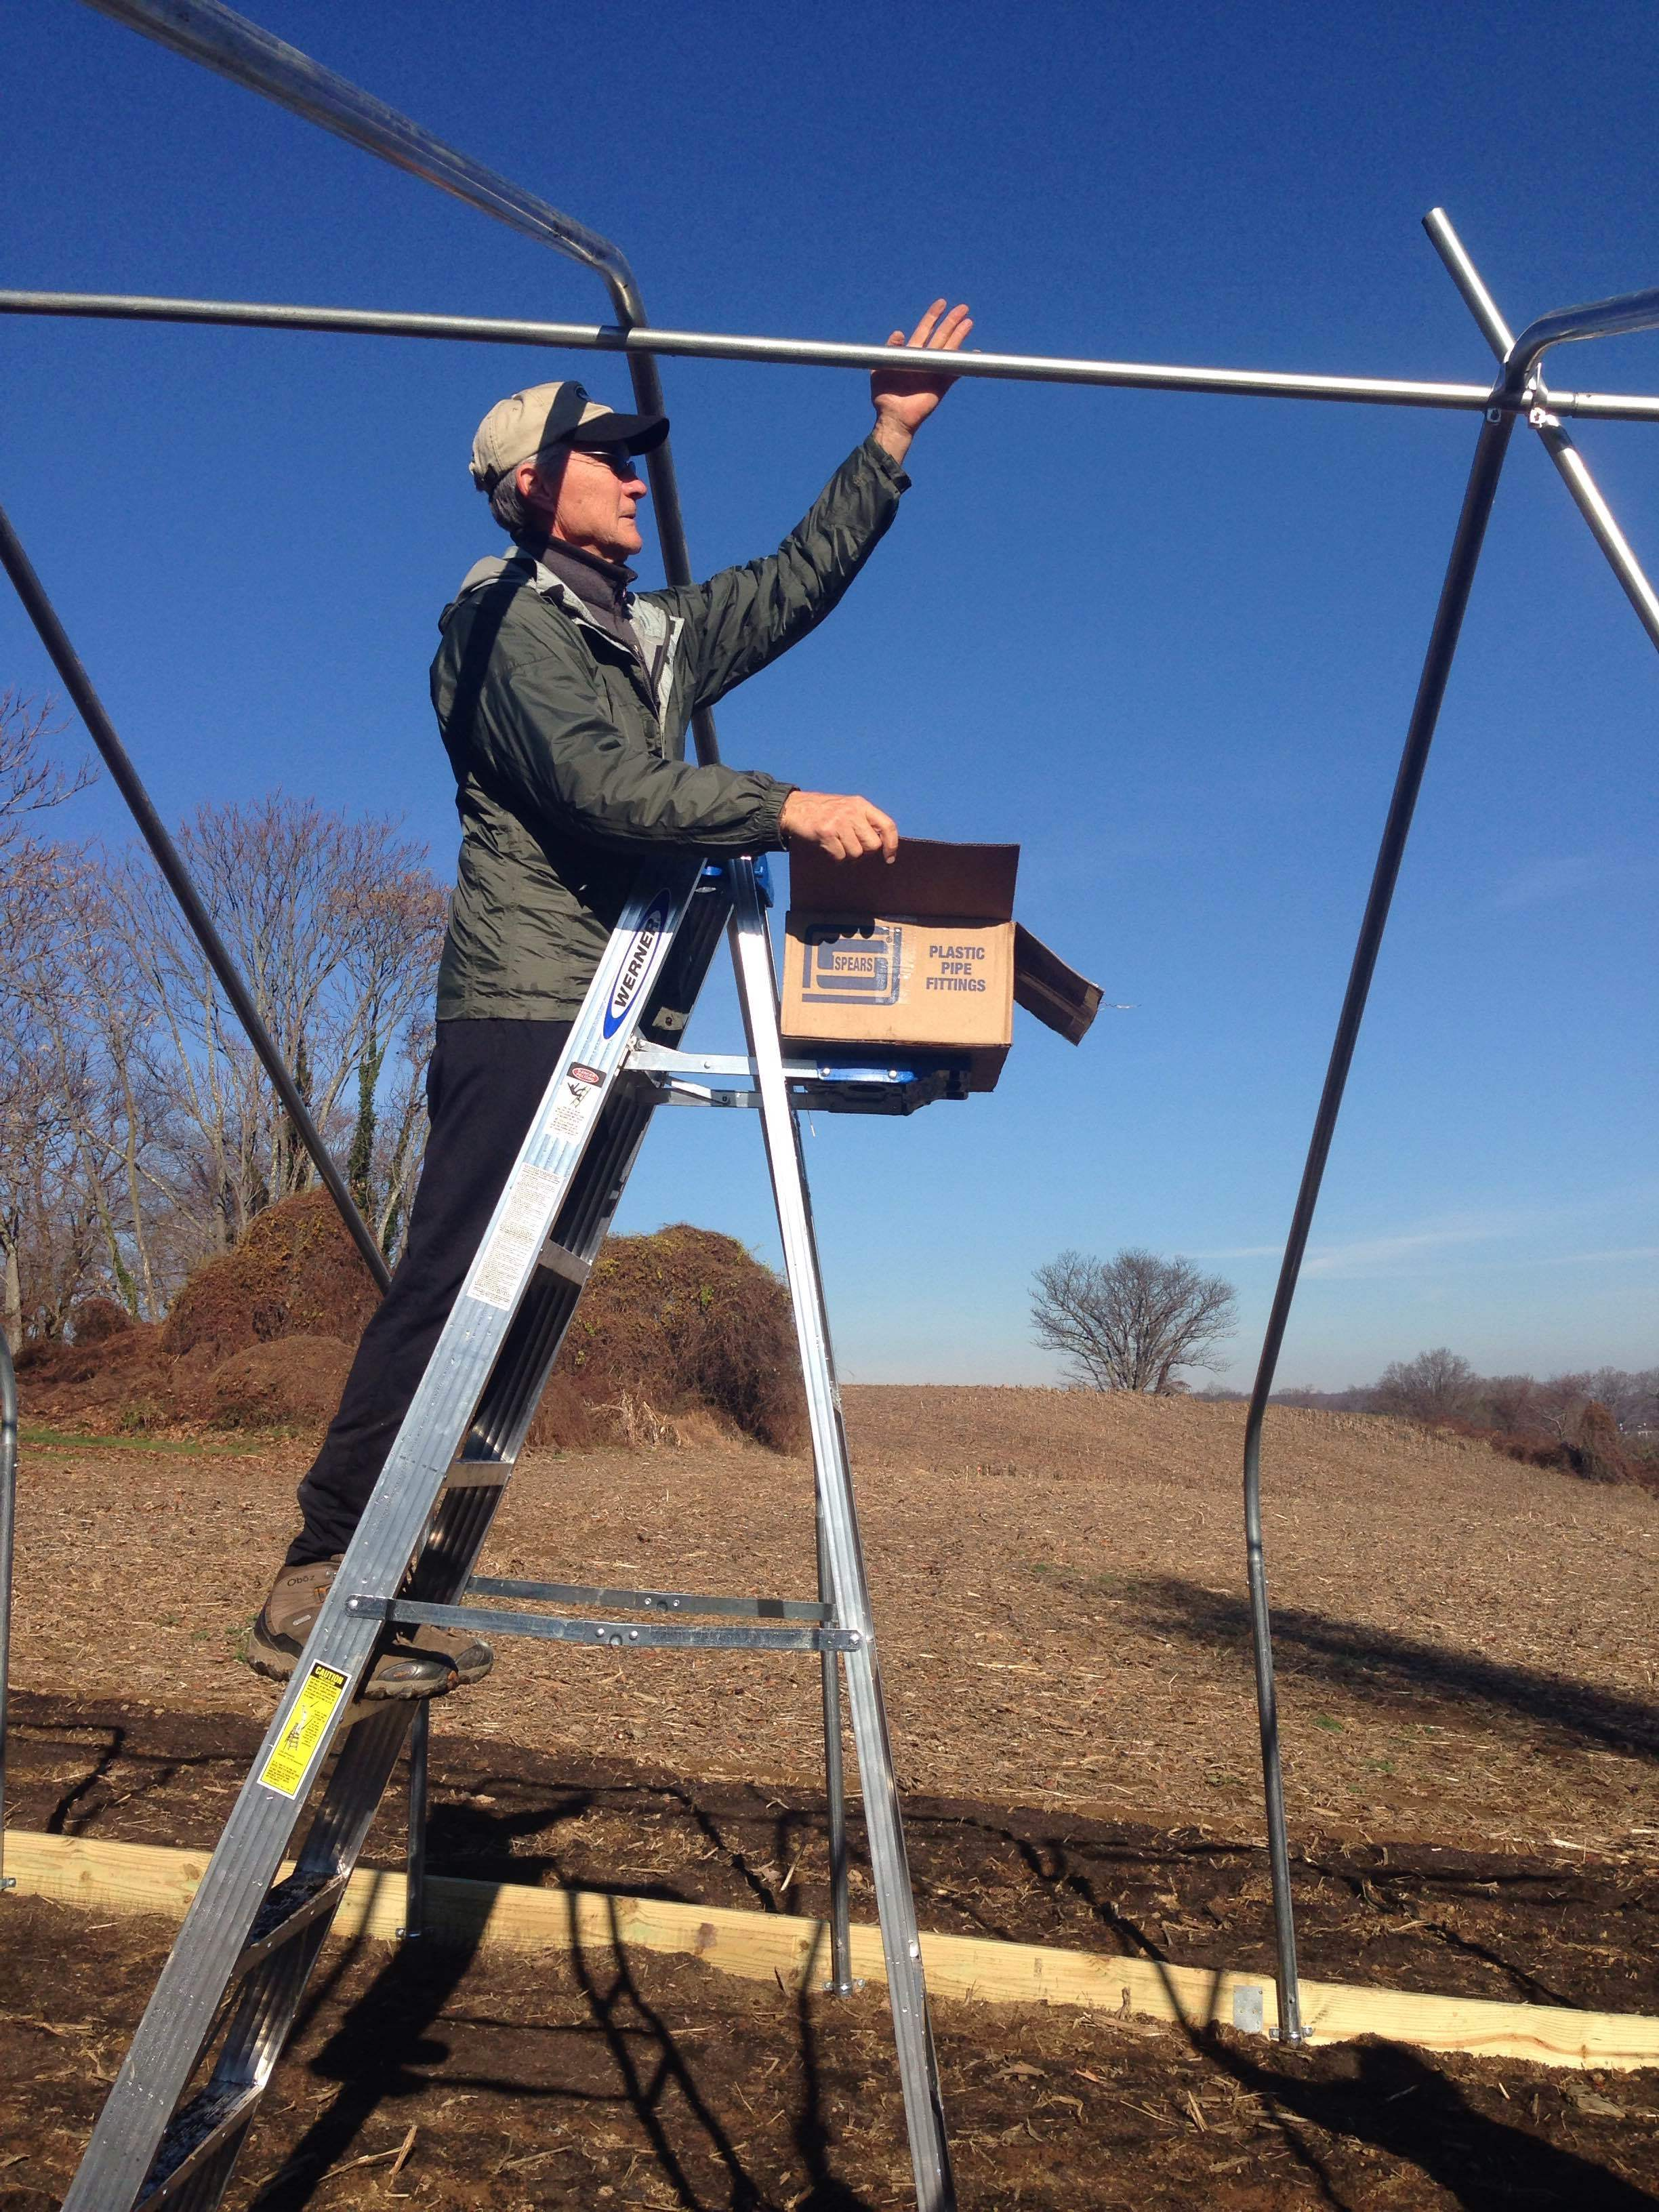 Dennis of Greenstone Fields hopped up on the ladder right away. He knew what he was doing, too!